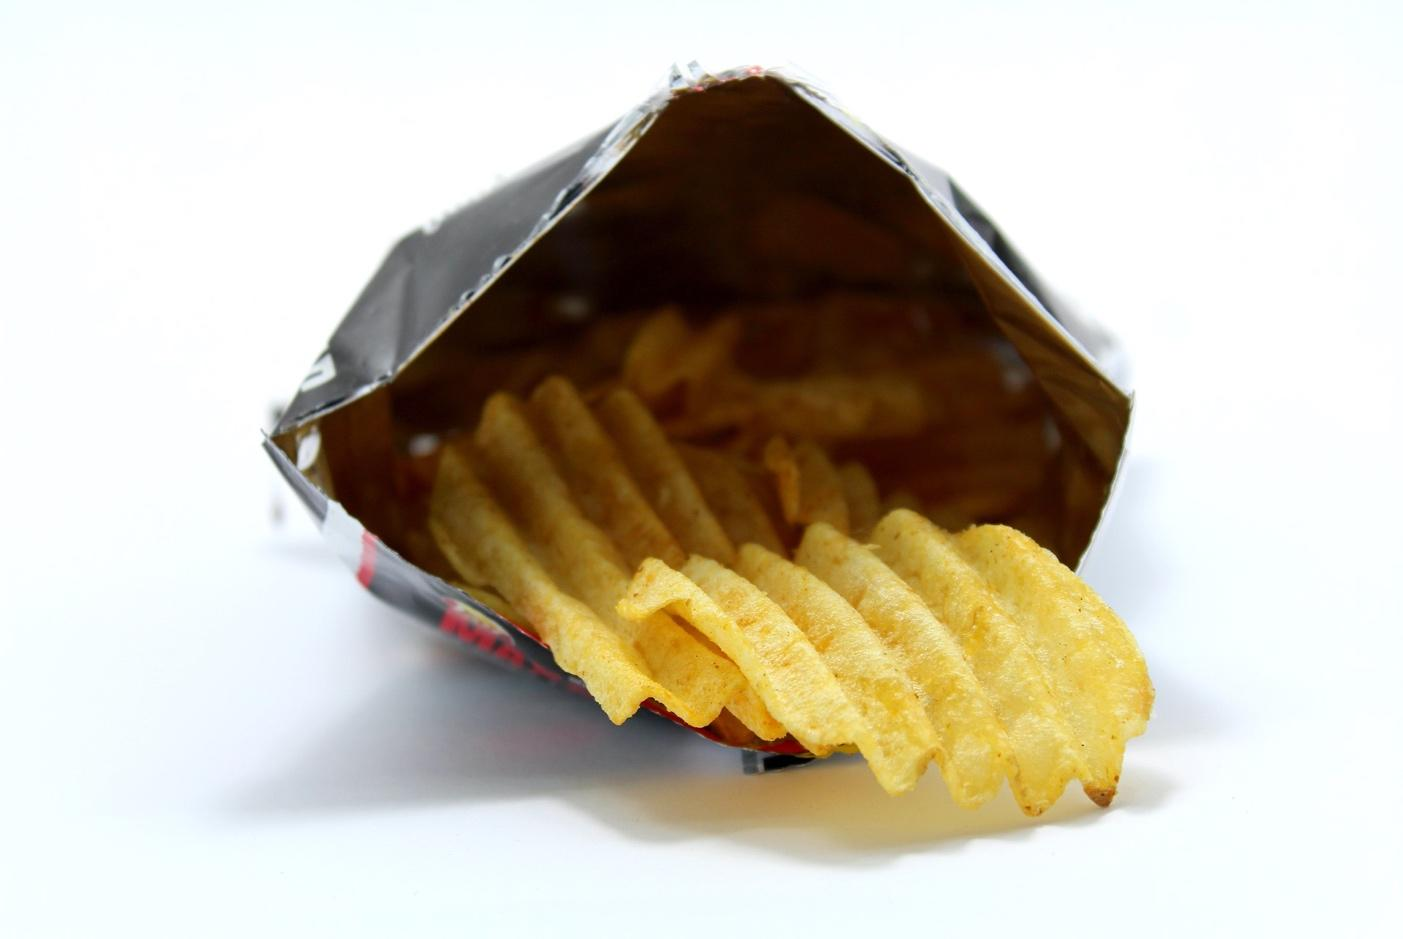 Packet of crisps open with crisp hanging out